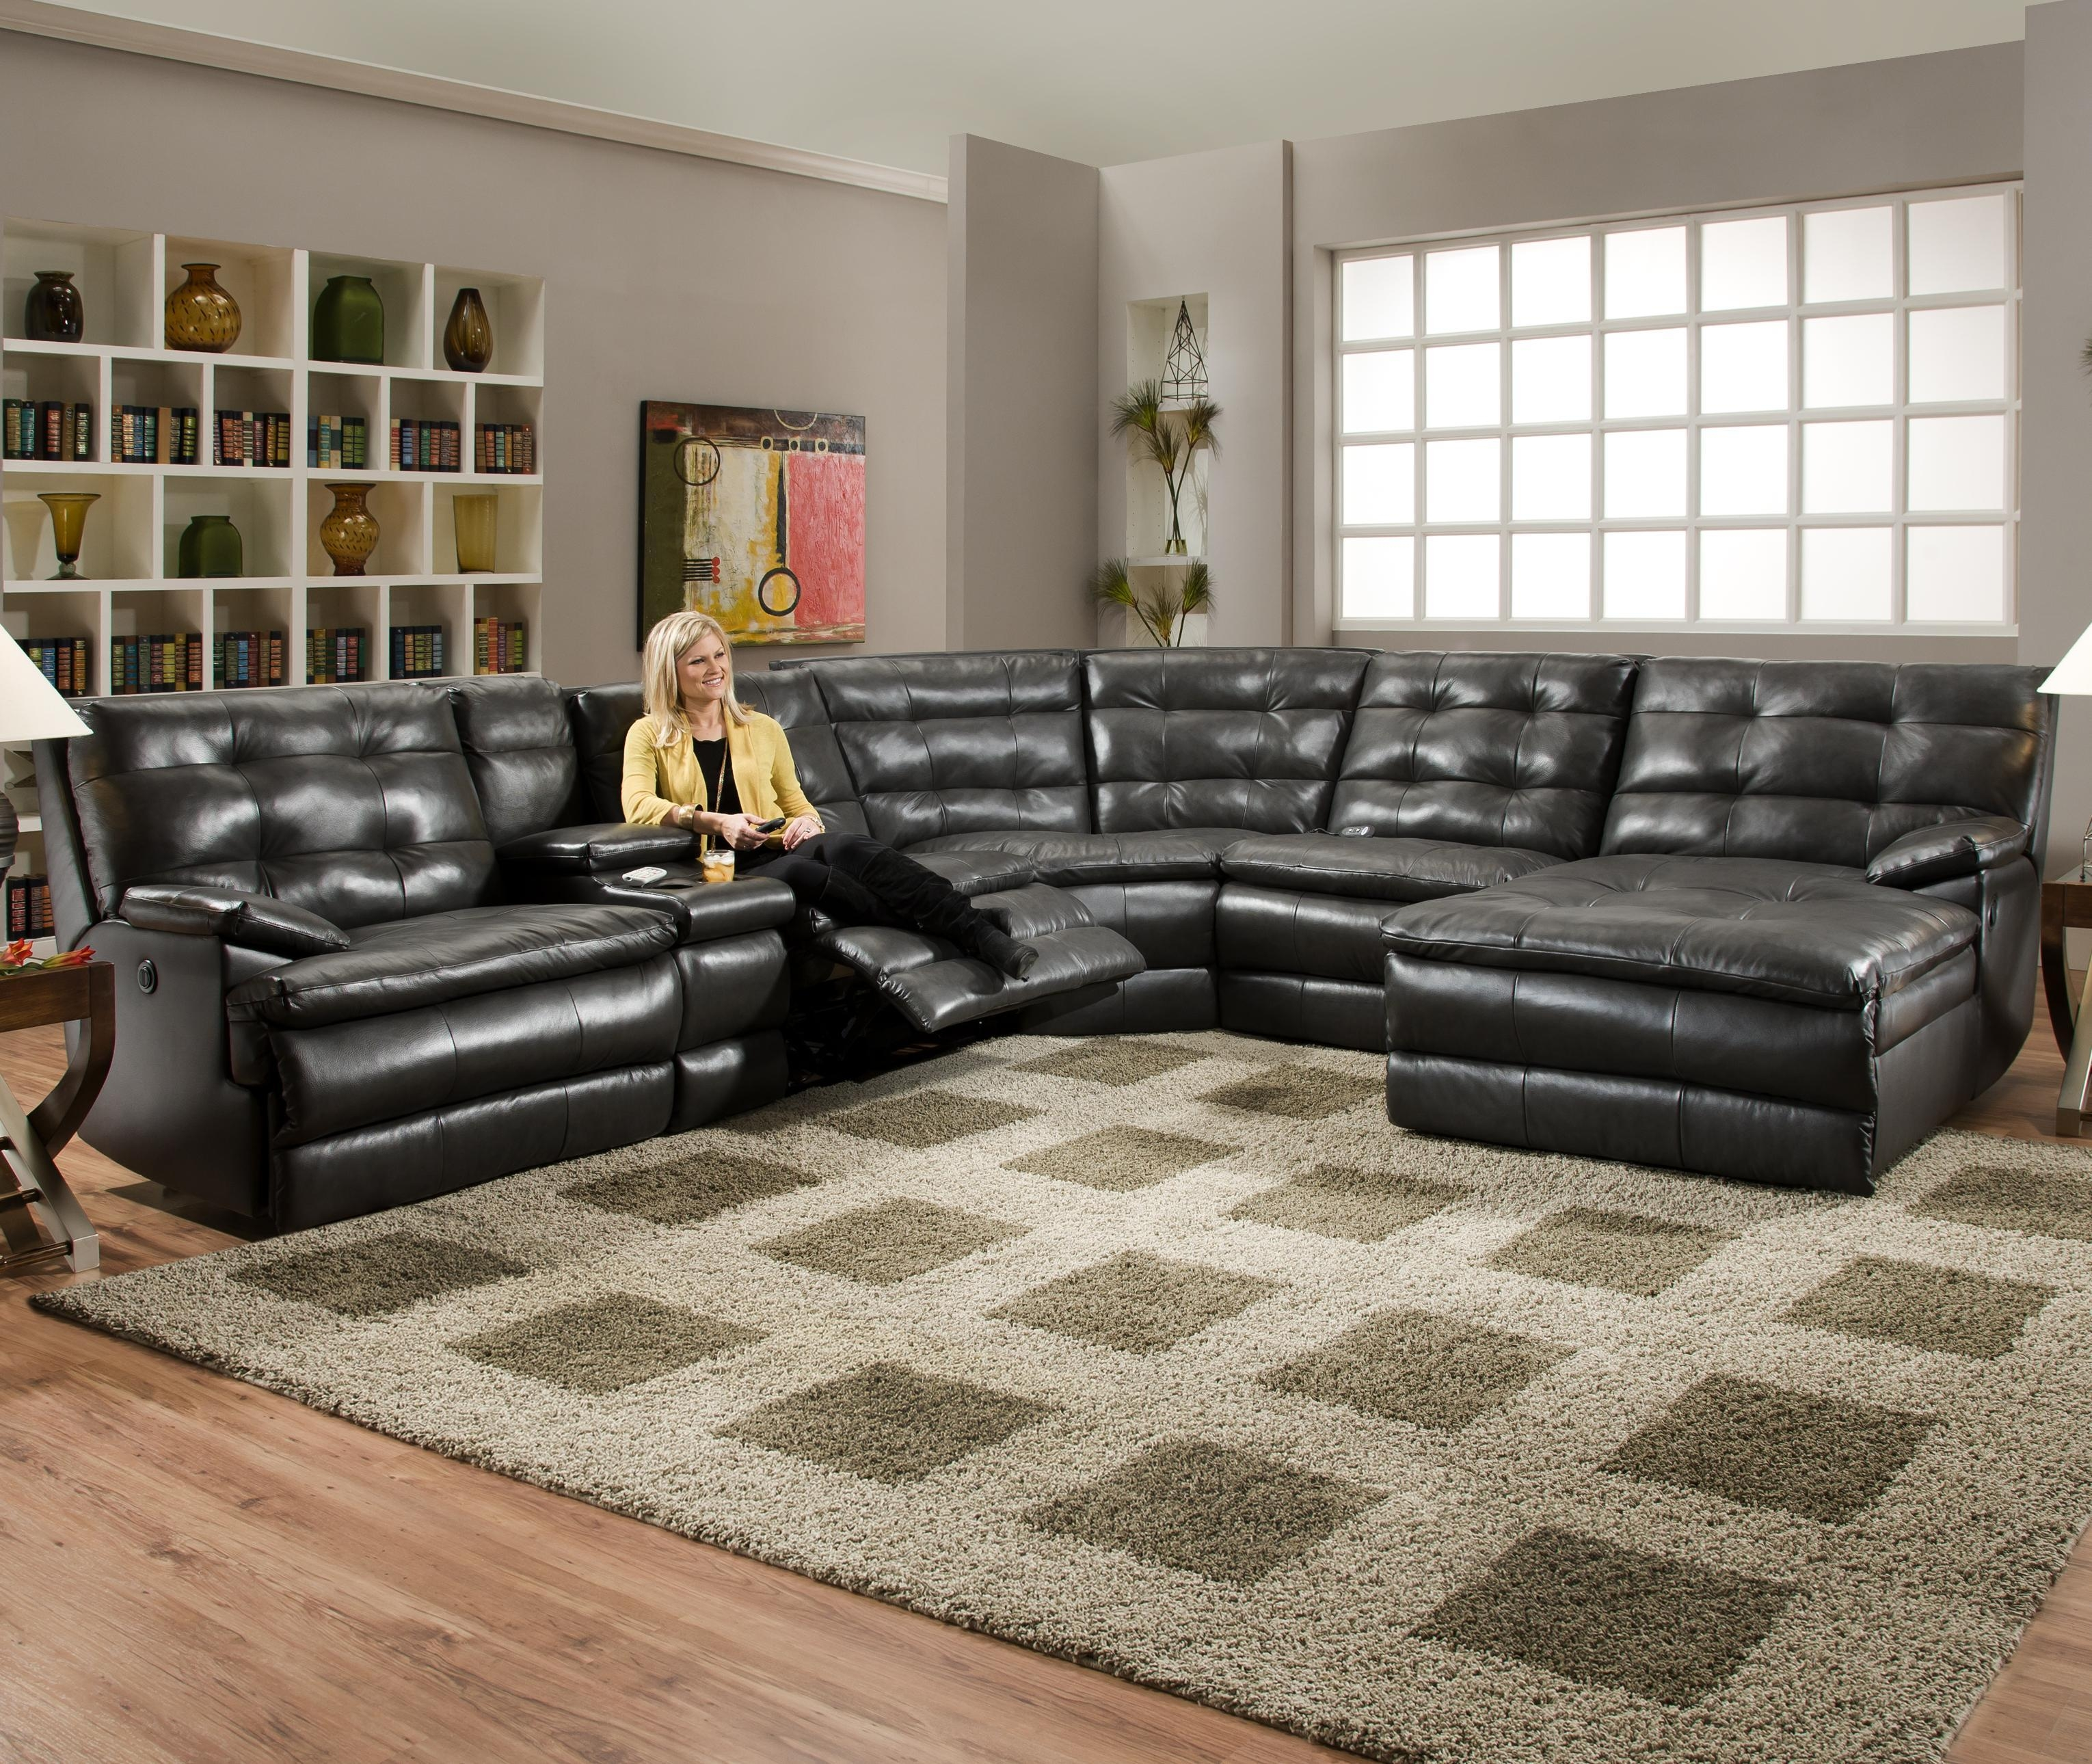 Furniture: Interesting Living Room Interior Using Large Sectional Throughout Oversized Sectional Sofa (Image 7 of 20)